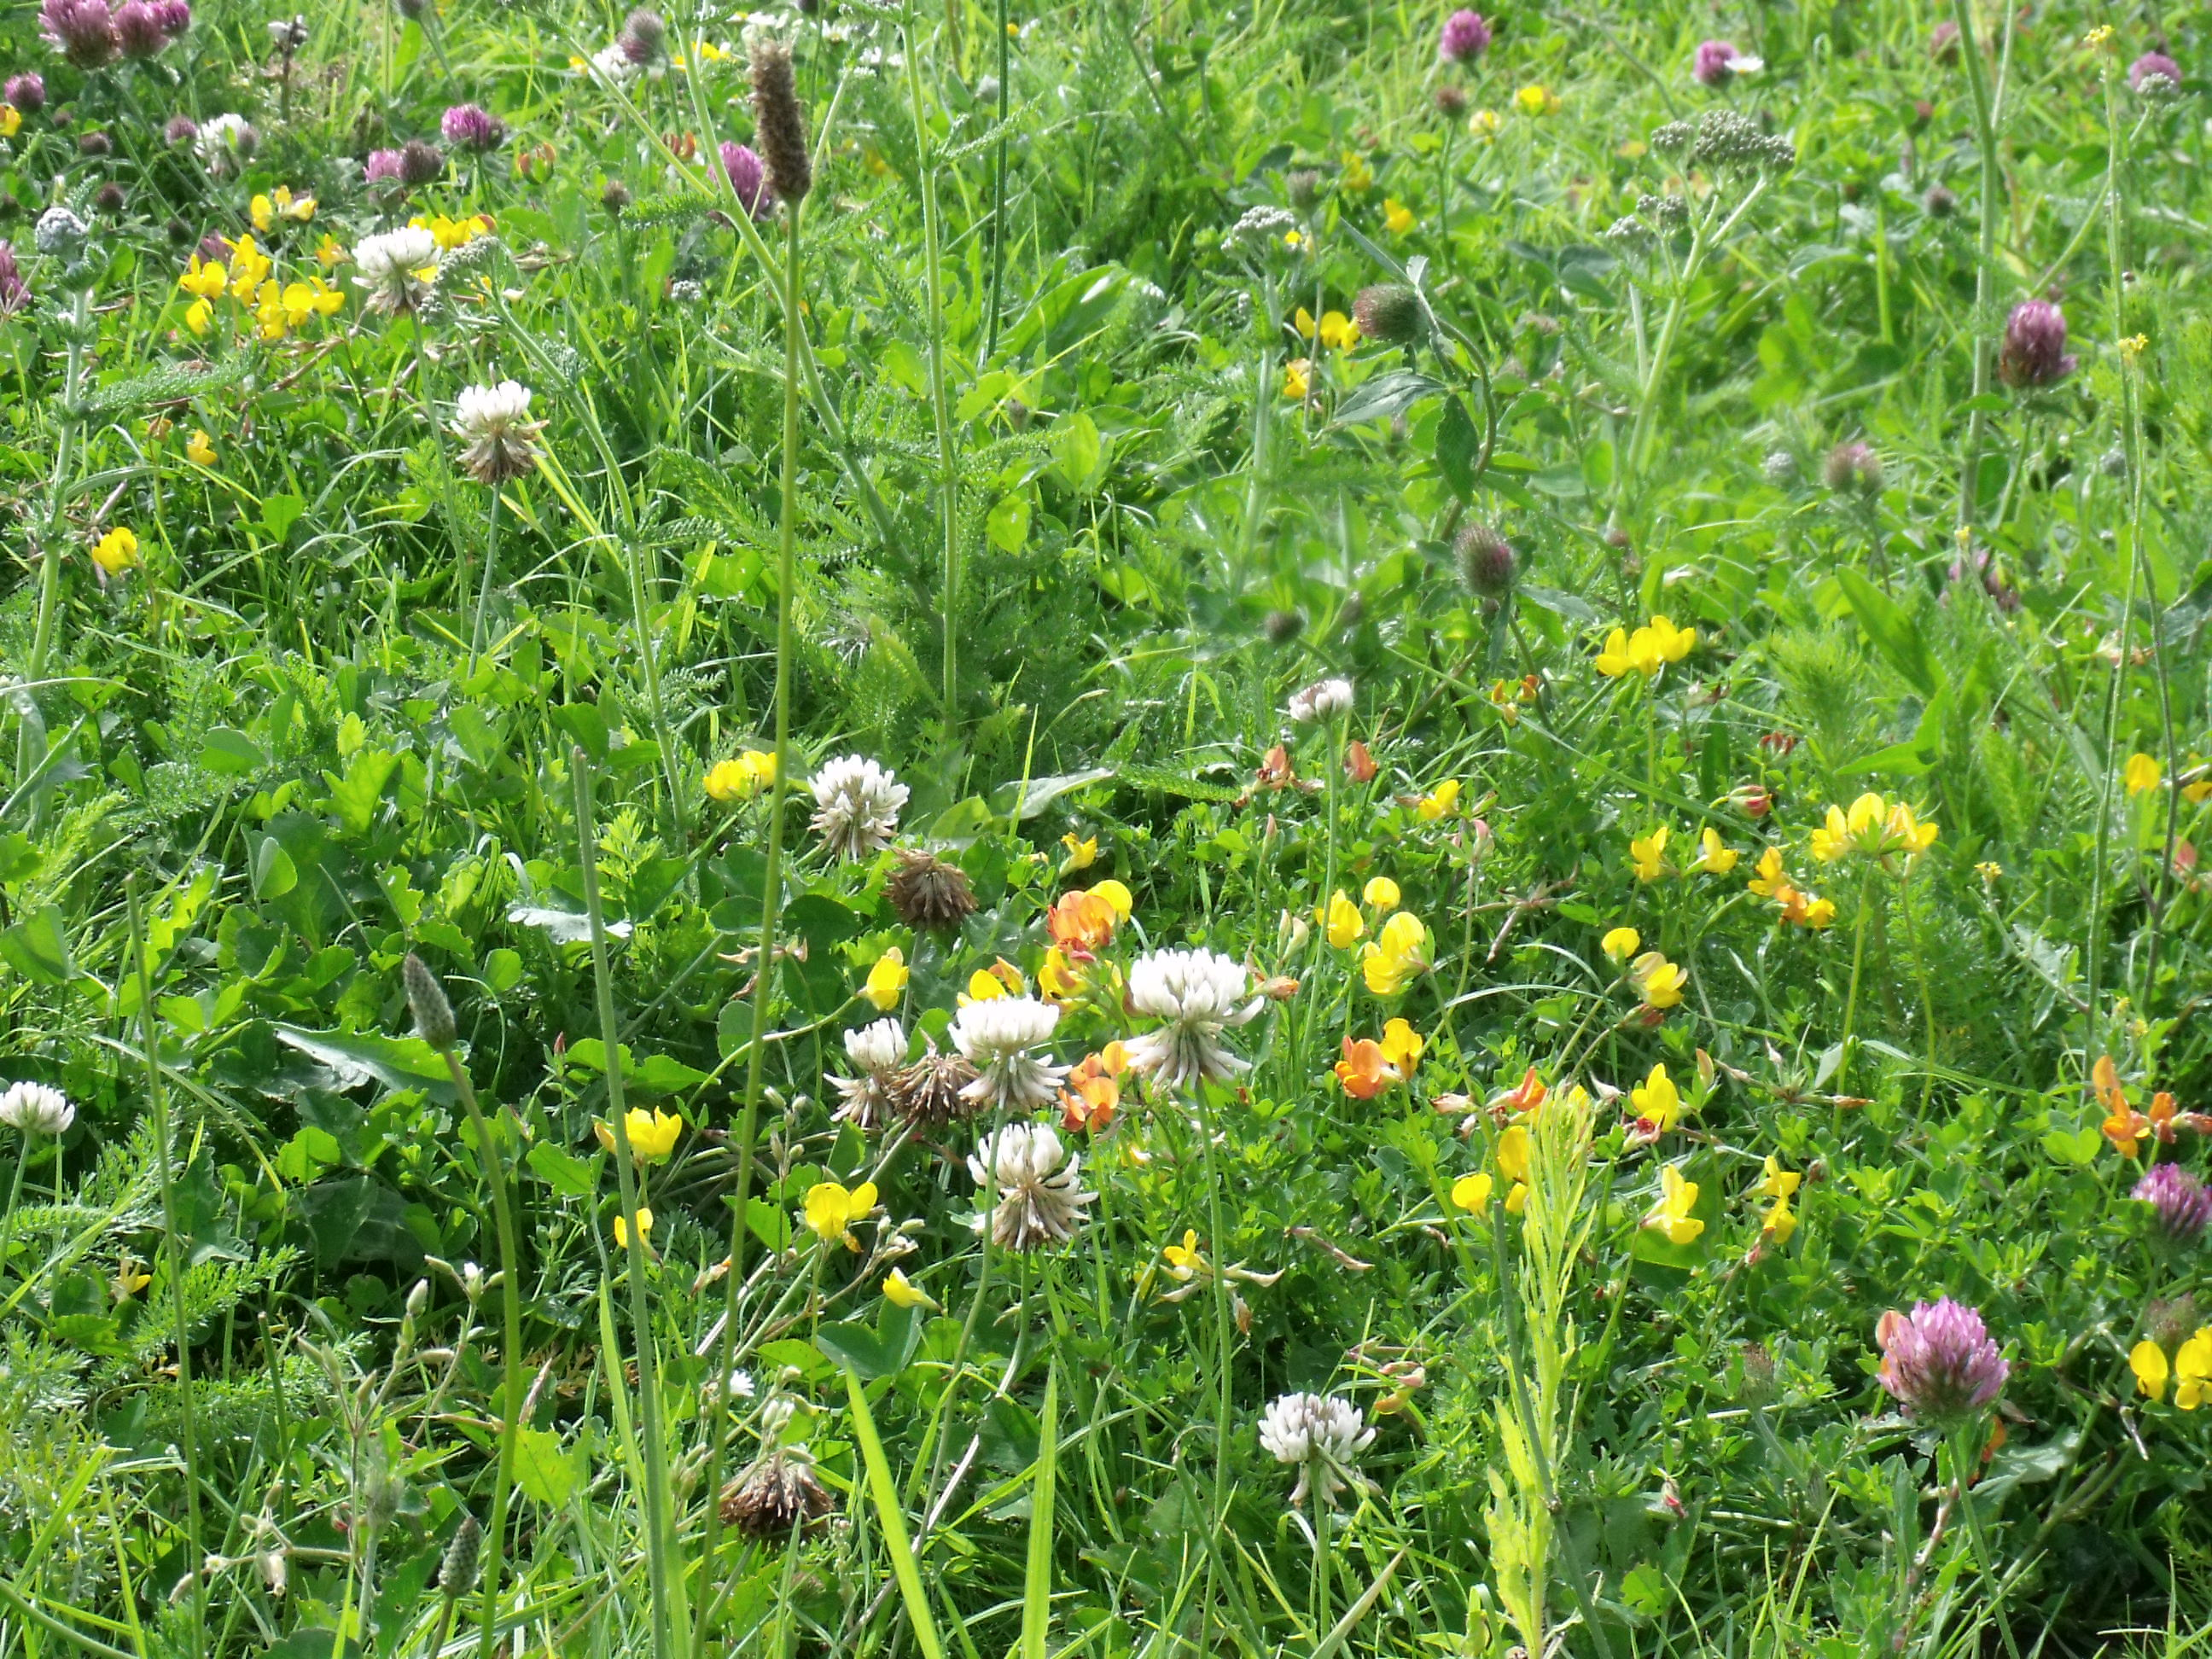 Gardening For Wildlife With Green Roofs And Floral Meadows